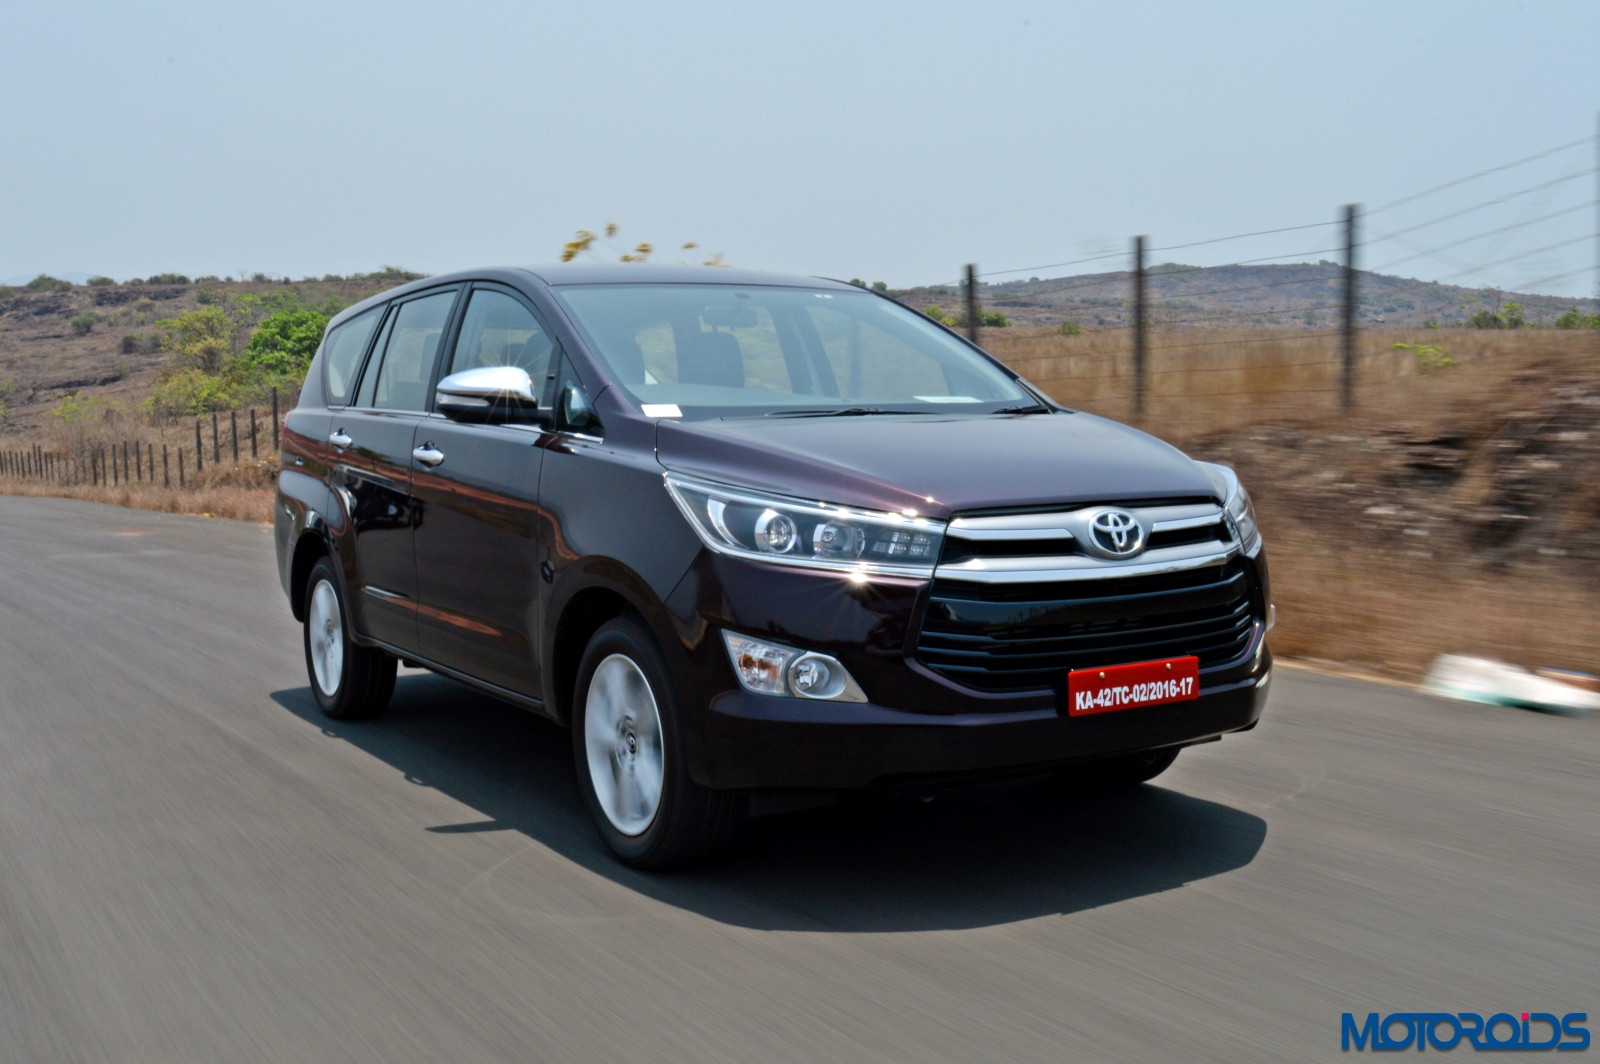 new 2016 toyota innova crysta launched in india  top new toyota innova crysta 2017 new toyota innova crysta colours